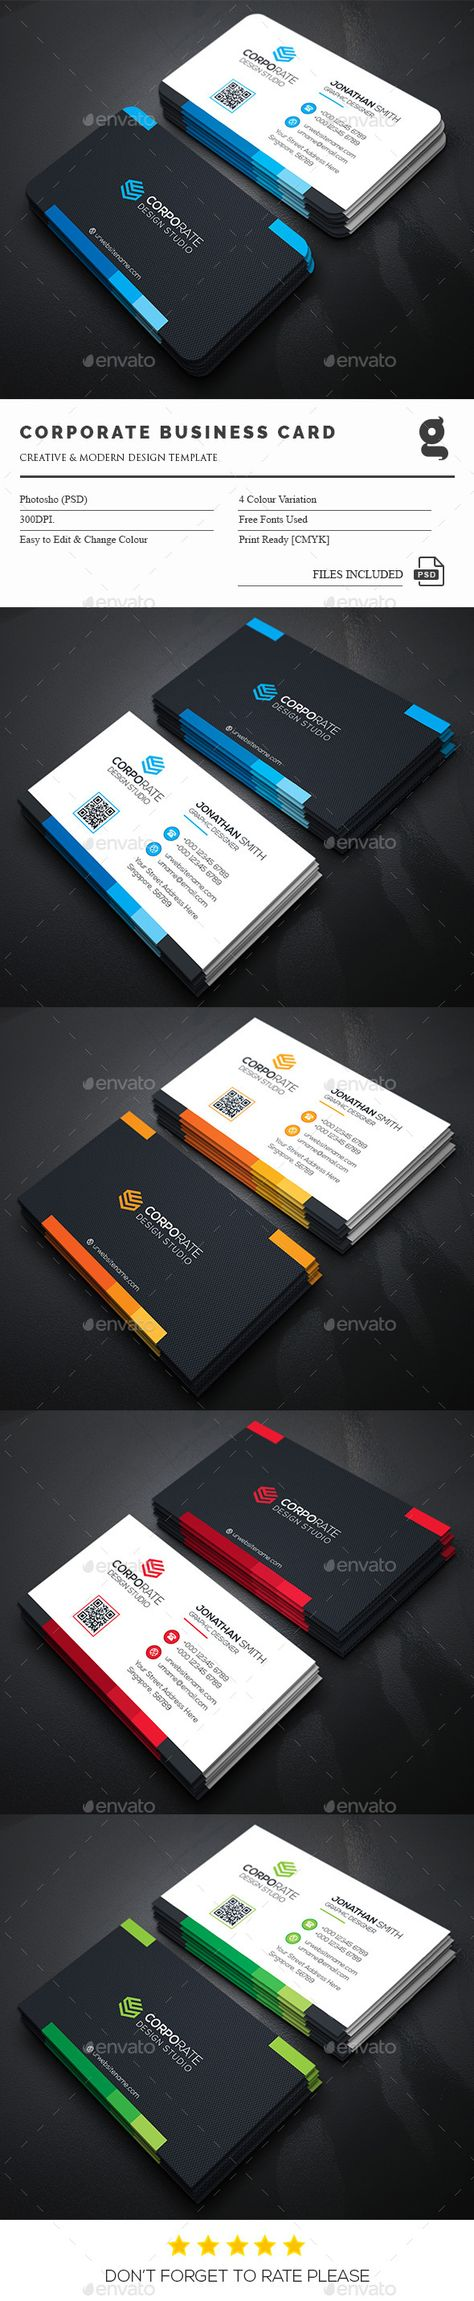 106 best creative business cards images on pinterest business 106 best creative business cards images on pinterest business cards logos and business magicingreecefo Choice Image